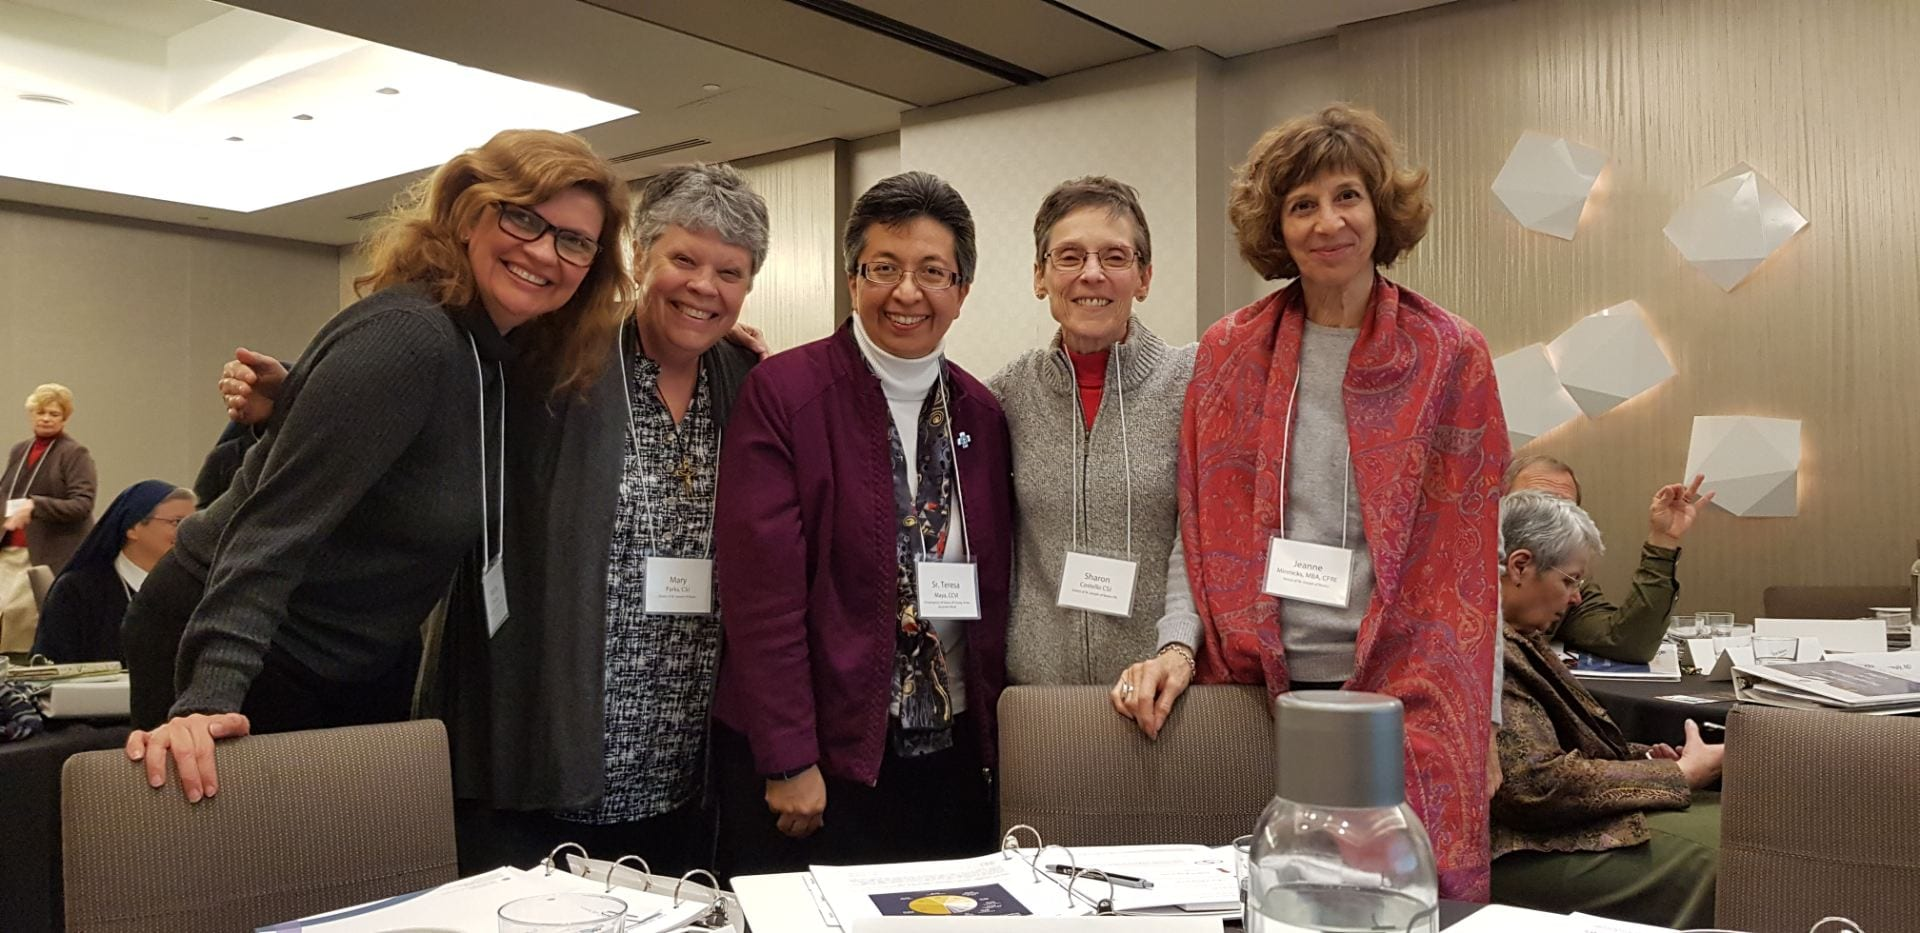 Sister Sharon Costello, second from right, with the Sisters of St. Joseph team and Sisters of Charity of the Incarnate Word team, at the initial workshop of Advancing Mission 2.0.